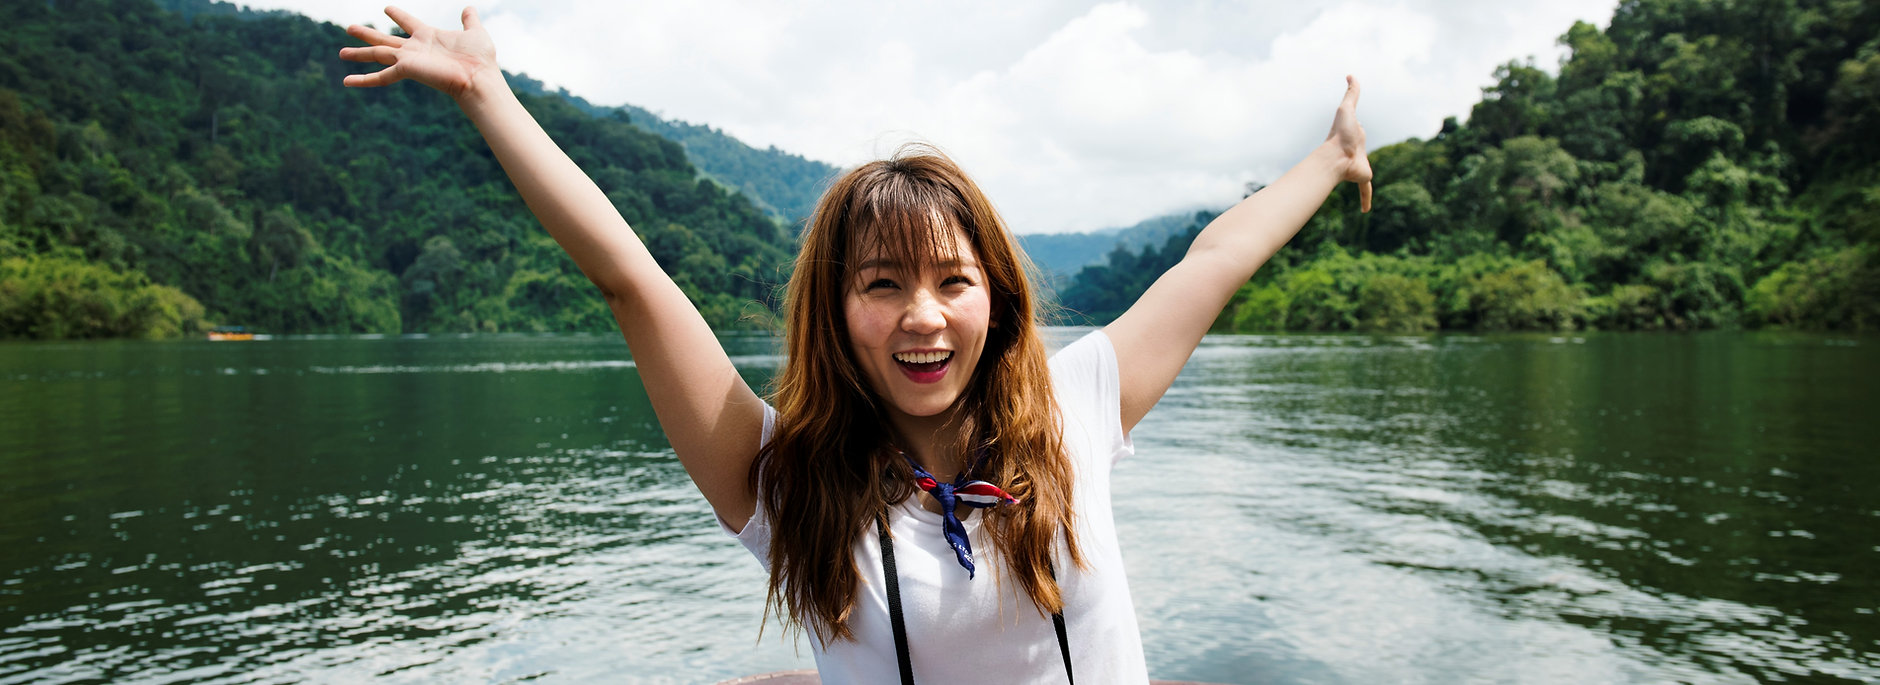 Satisfied outdoor adventure program customer smiling and holding her hands up in air in front of river and forested hills outdoors